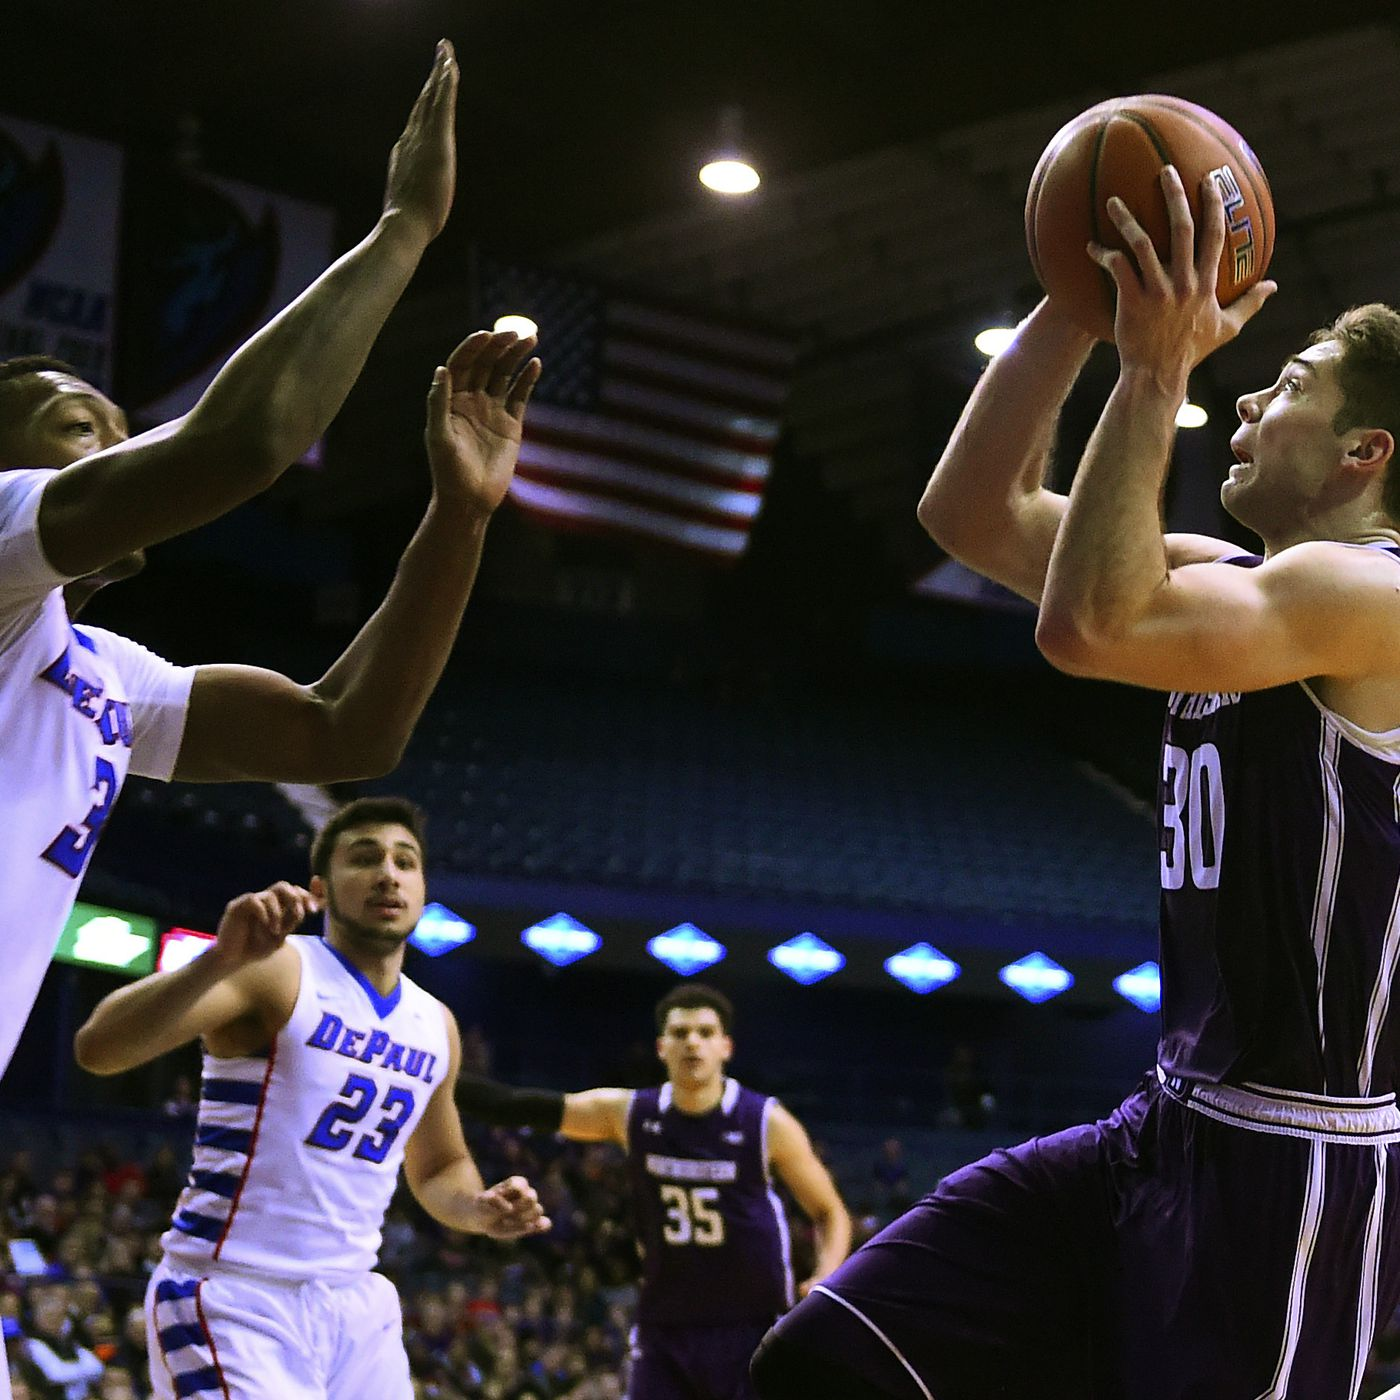 Northwestern basketball enters a season of strange unknowns